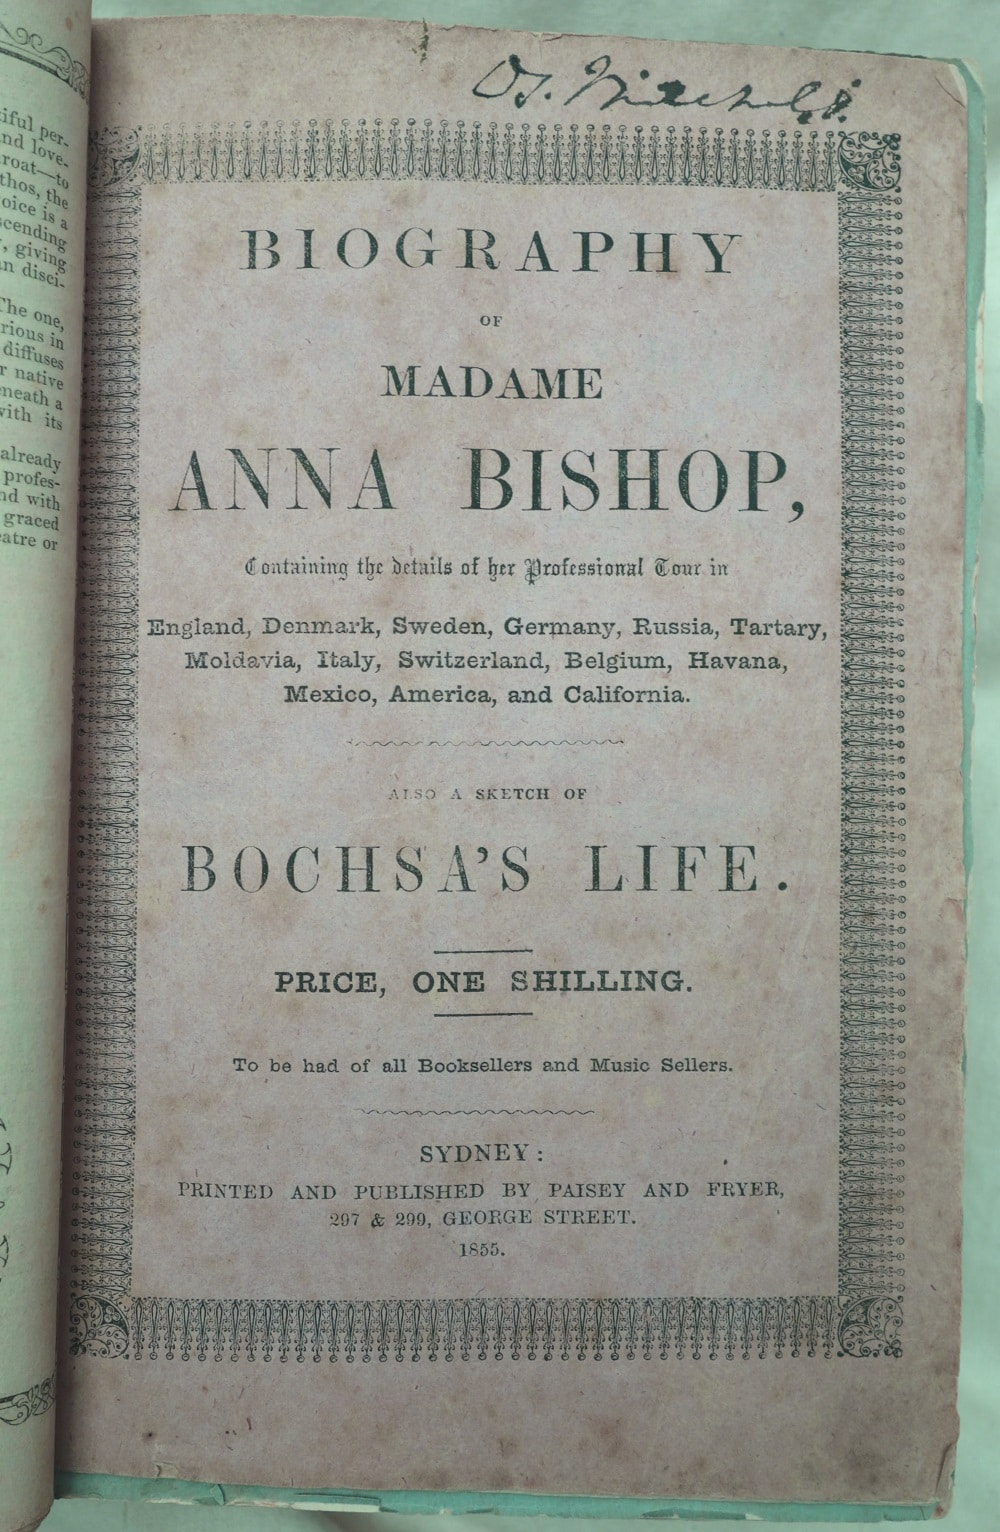 e9fad079d David Mitchell's copy of Biography of Madame Anna Bishop, State Library of  New South Wales